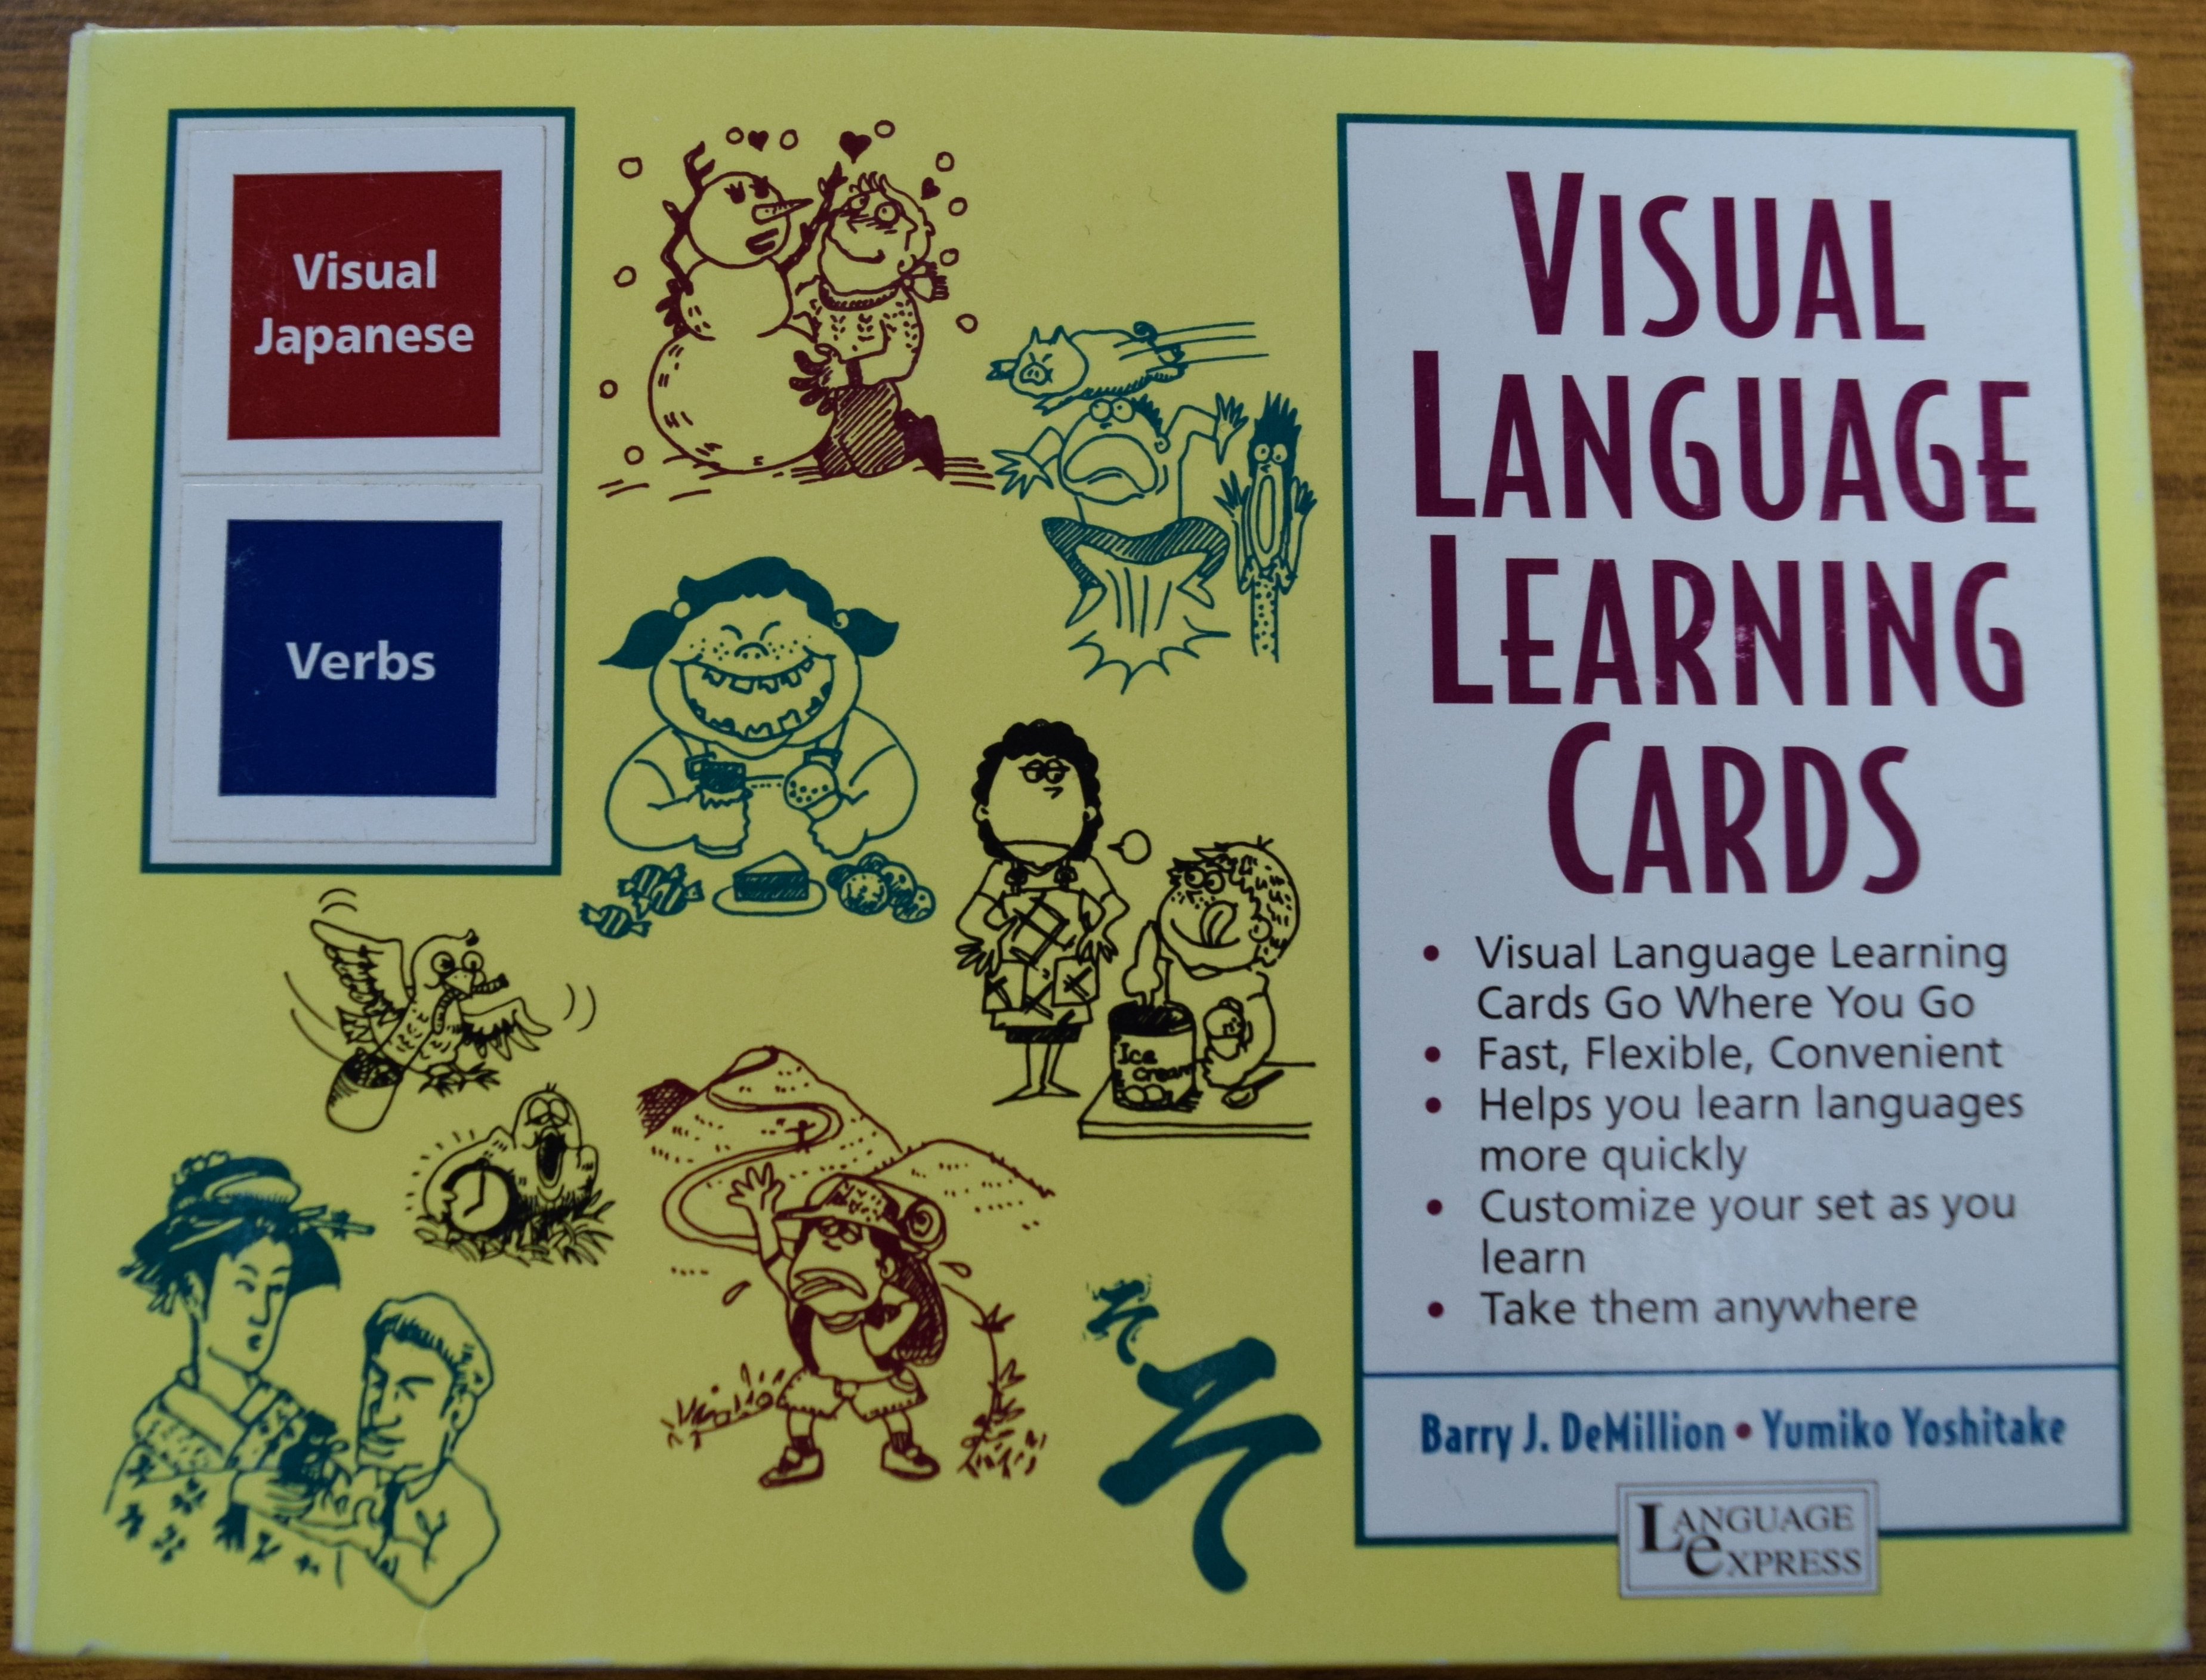 Visual Language Learning Cards